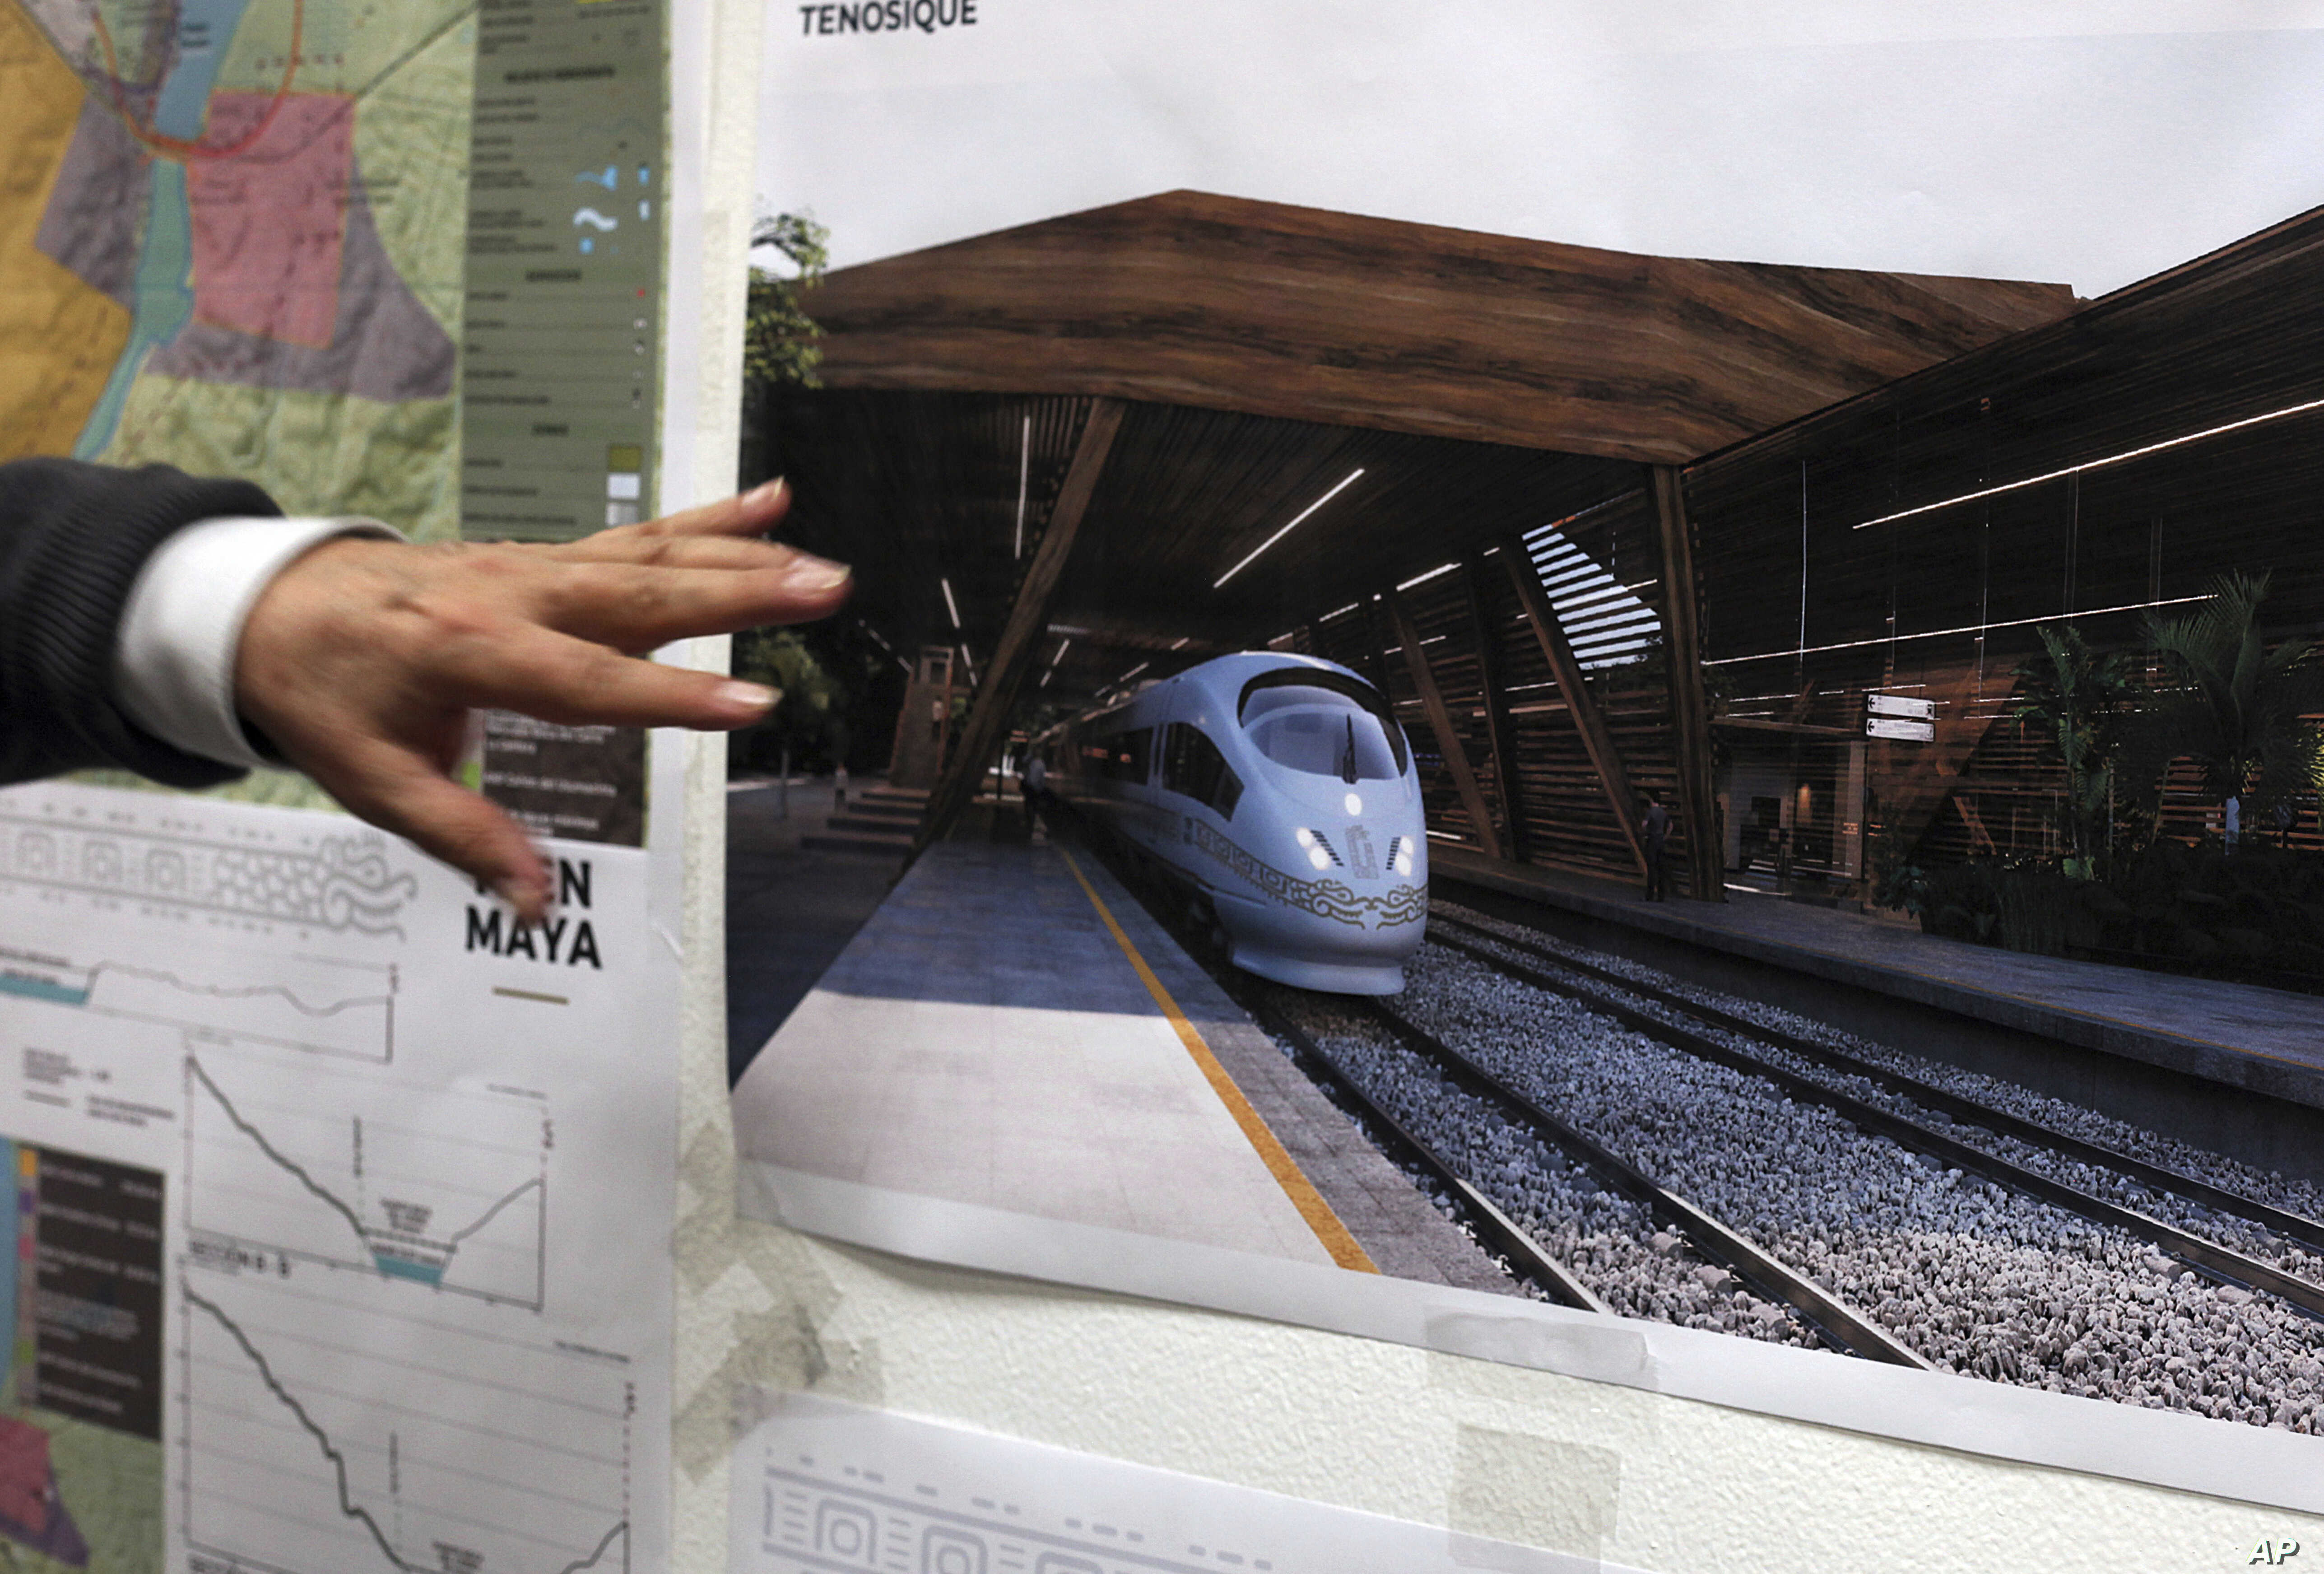 Rogelio Jiménez Pons, director of Fonatur, points to photos of a planned train through the Yucatan Peninsula, during an interview in Mexico City, Monday, March 18, 2019.